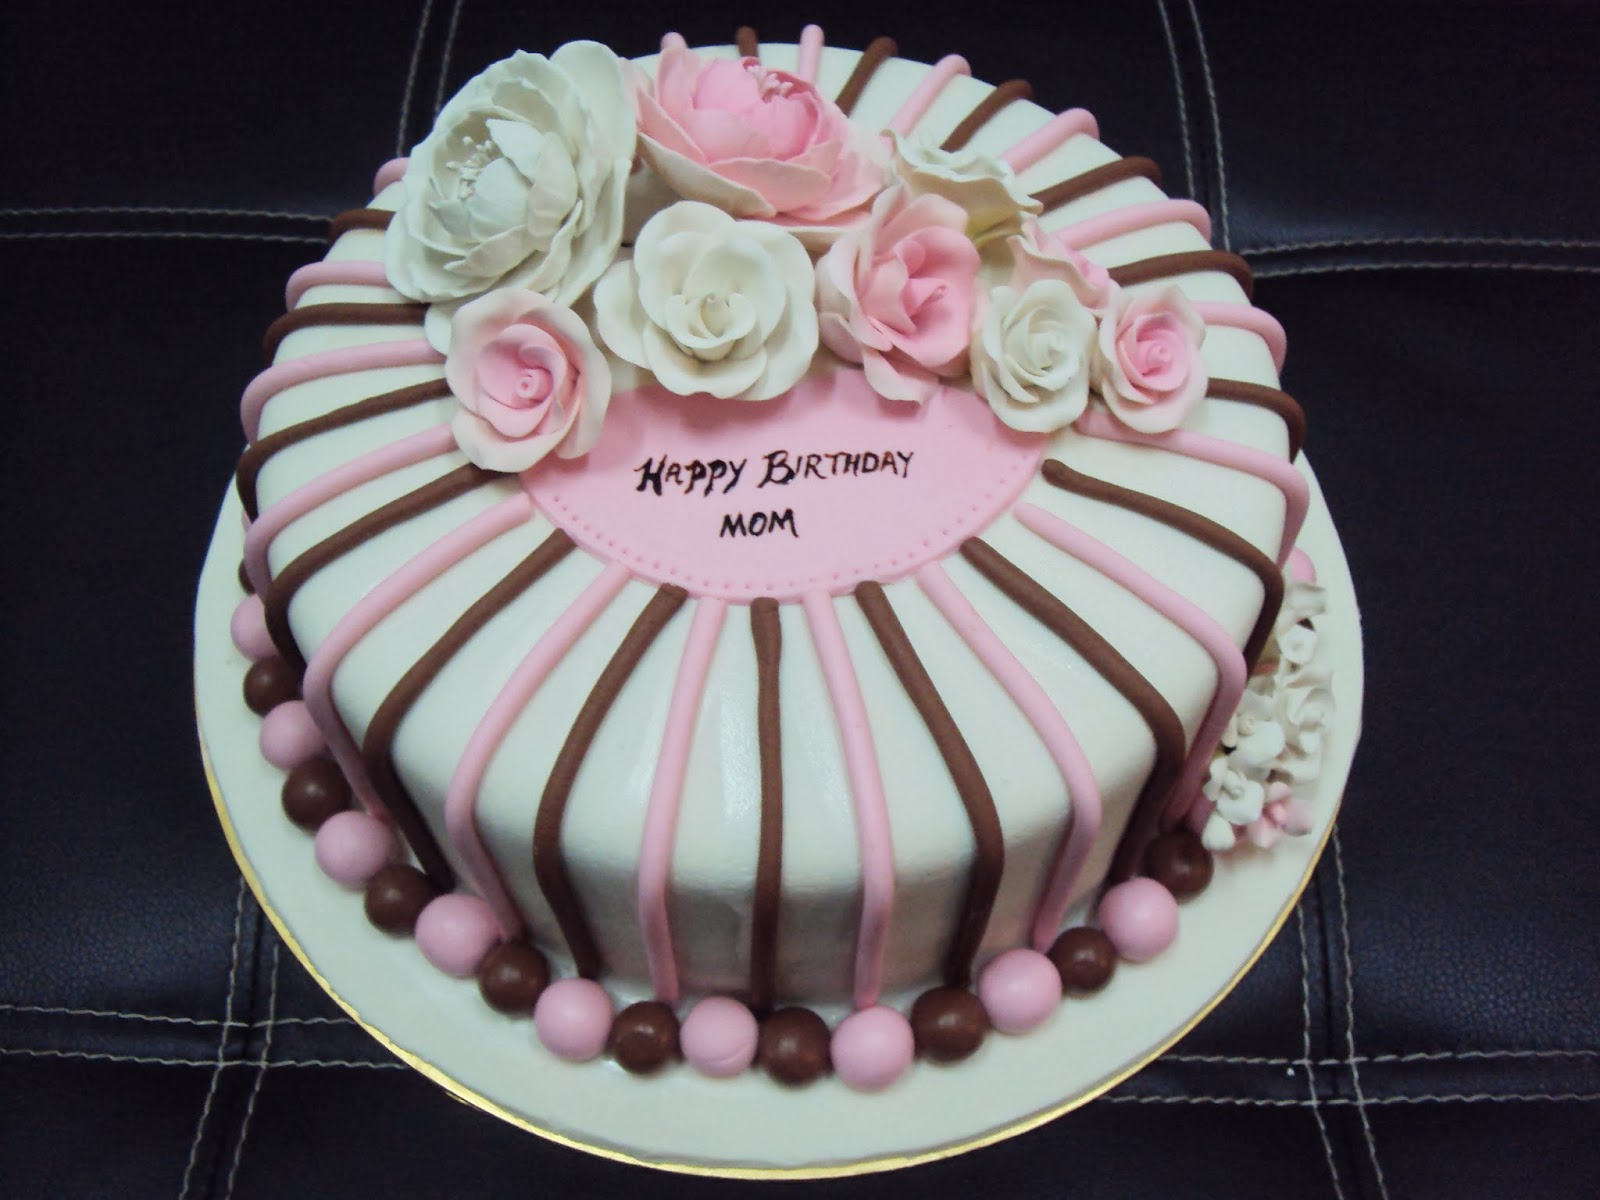 Cake Designs For Mom : Fondant Birthday Cakes For Moms images